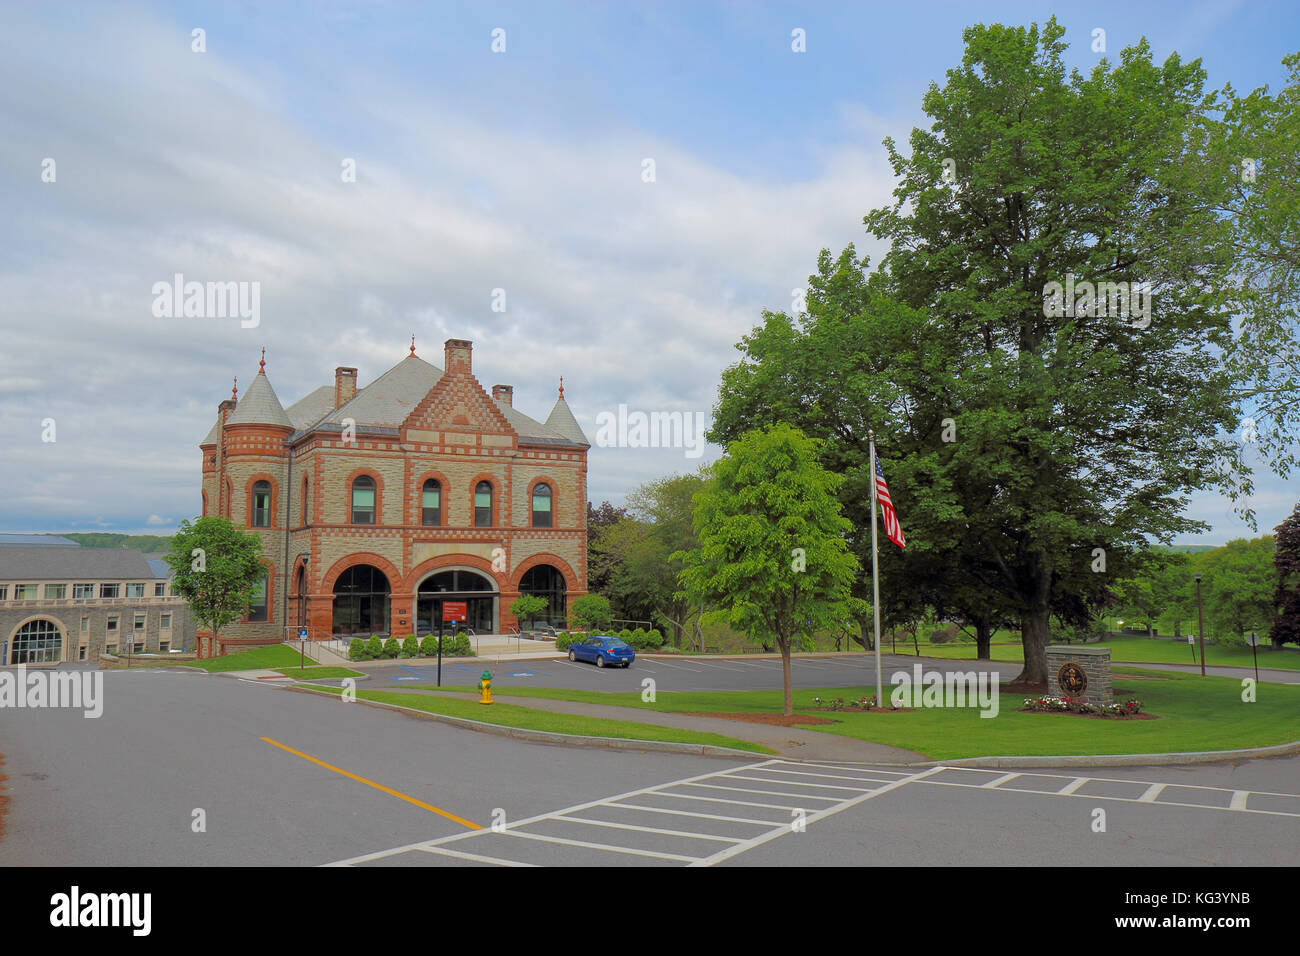 HAMILTON, NEW YORK - MAY 28 2017: The James B Colgate admissions and administration building on the campus of Colgate - Stock Image